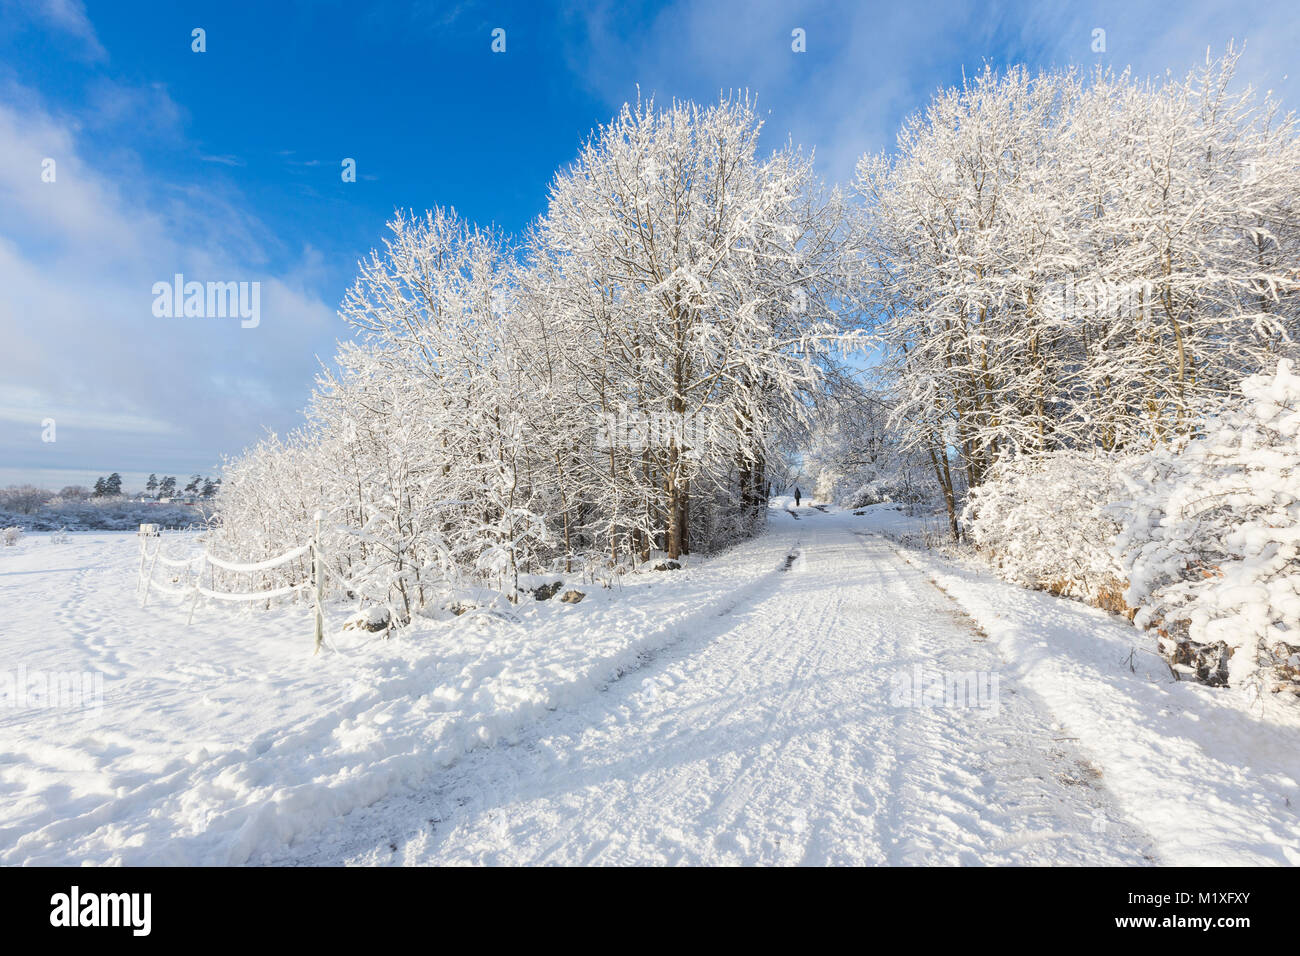 Rural Road Covered In Snow Jarfalla Sweden